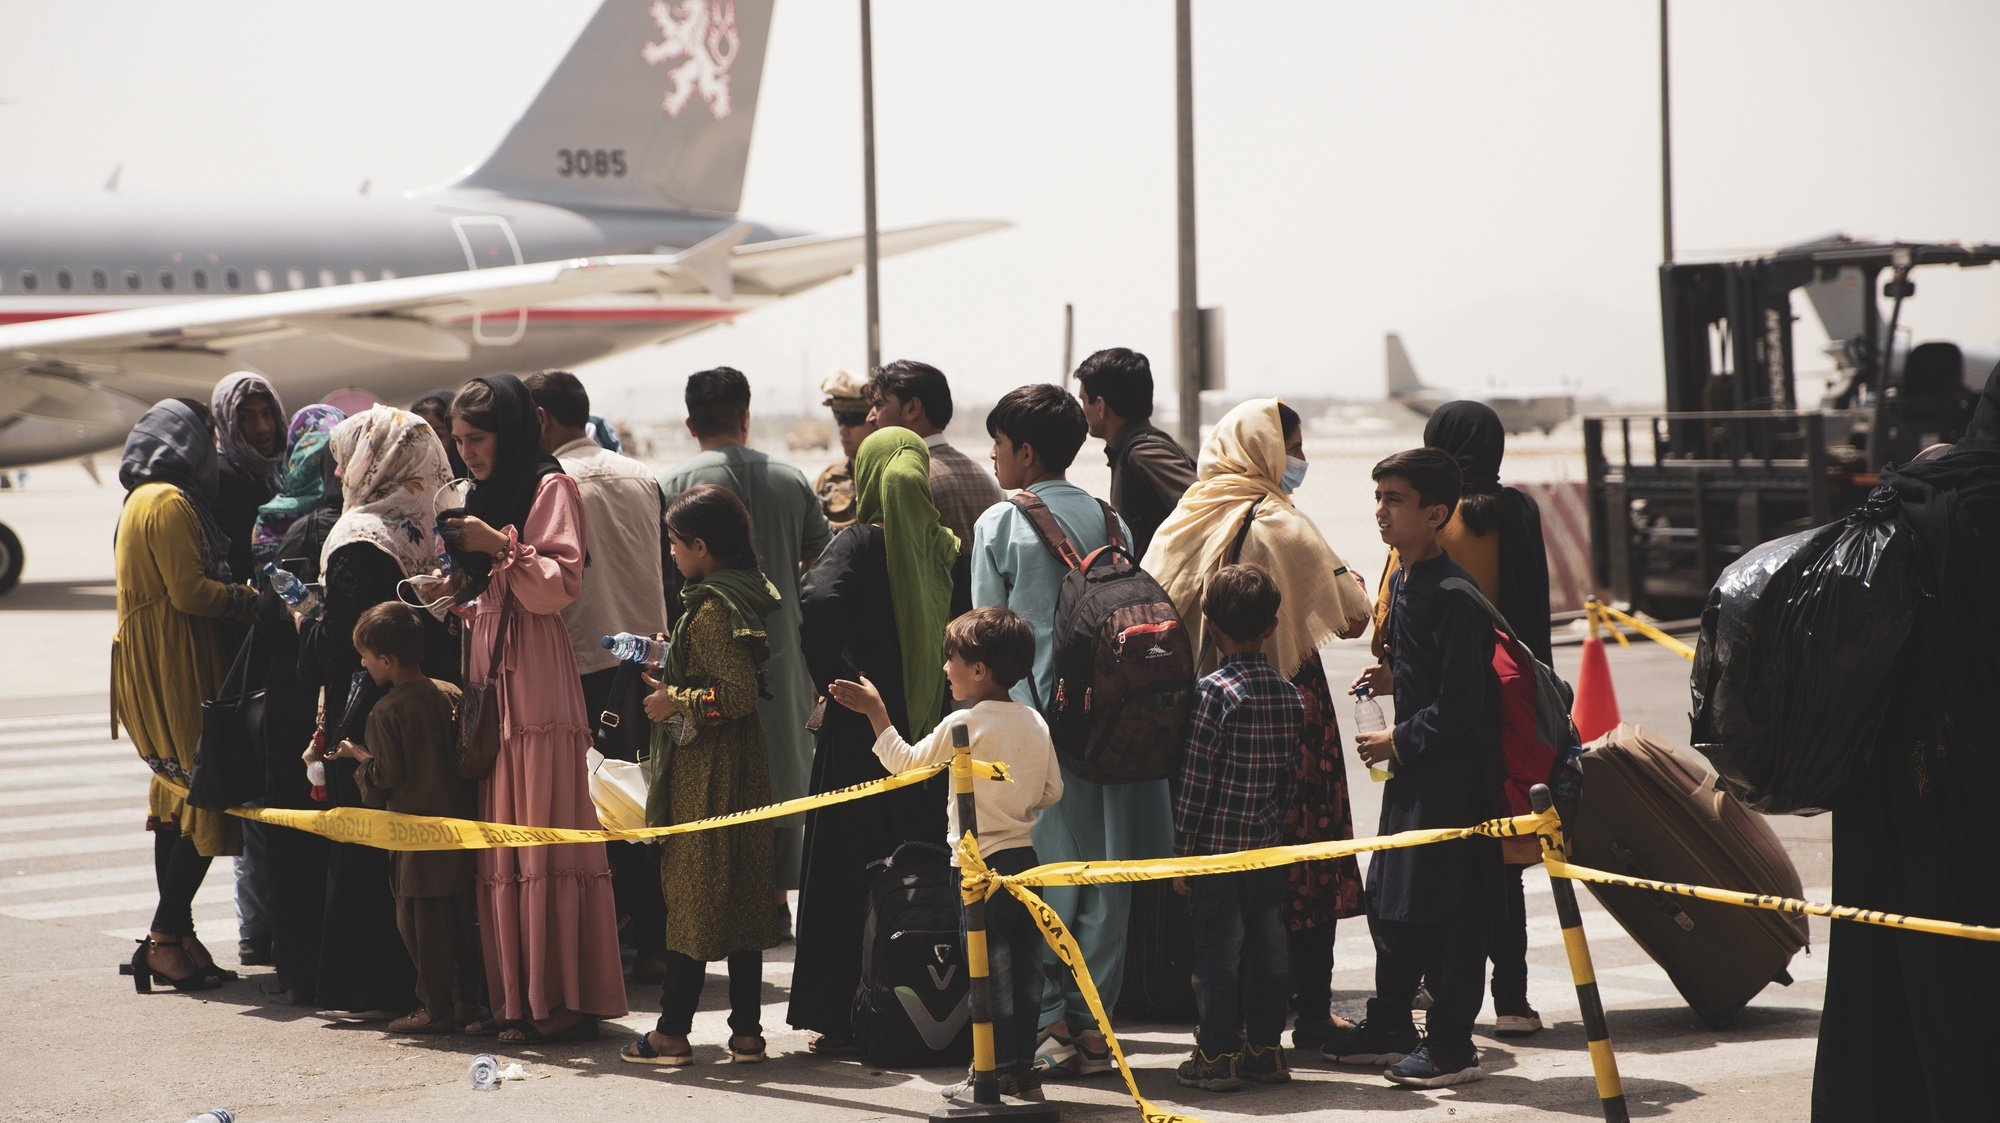 epa09421074 A handout photo made available by US Central Command Public Affairs shows civilians preparing to board a plane during an evacuation at Hamid Karzai International Airport, Kabul, Afghanistan, 18 August 2021 (issued 19 August 2021). US Marines are assisting the Department of State with an orderly drawdown of designated personnel in Afghanistan. (U.S. Marine Corps photo by Staff Sgt. Victor Mancilla) EPA/Staff Sgt. Victor Mancilla/ US Central Command Public Affairs HO Released By:LT Robert MookPublic Affairs OfficerJoint Task Force-Crisis Responserobert.e.mook2.mil@mail.mil HANDOUT EDITORIAL USE ONLY/NO SALES